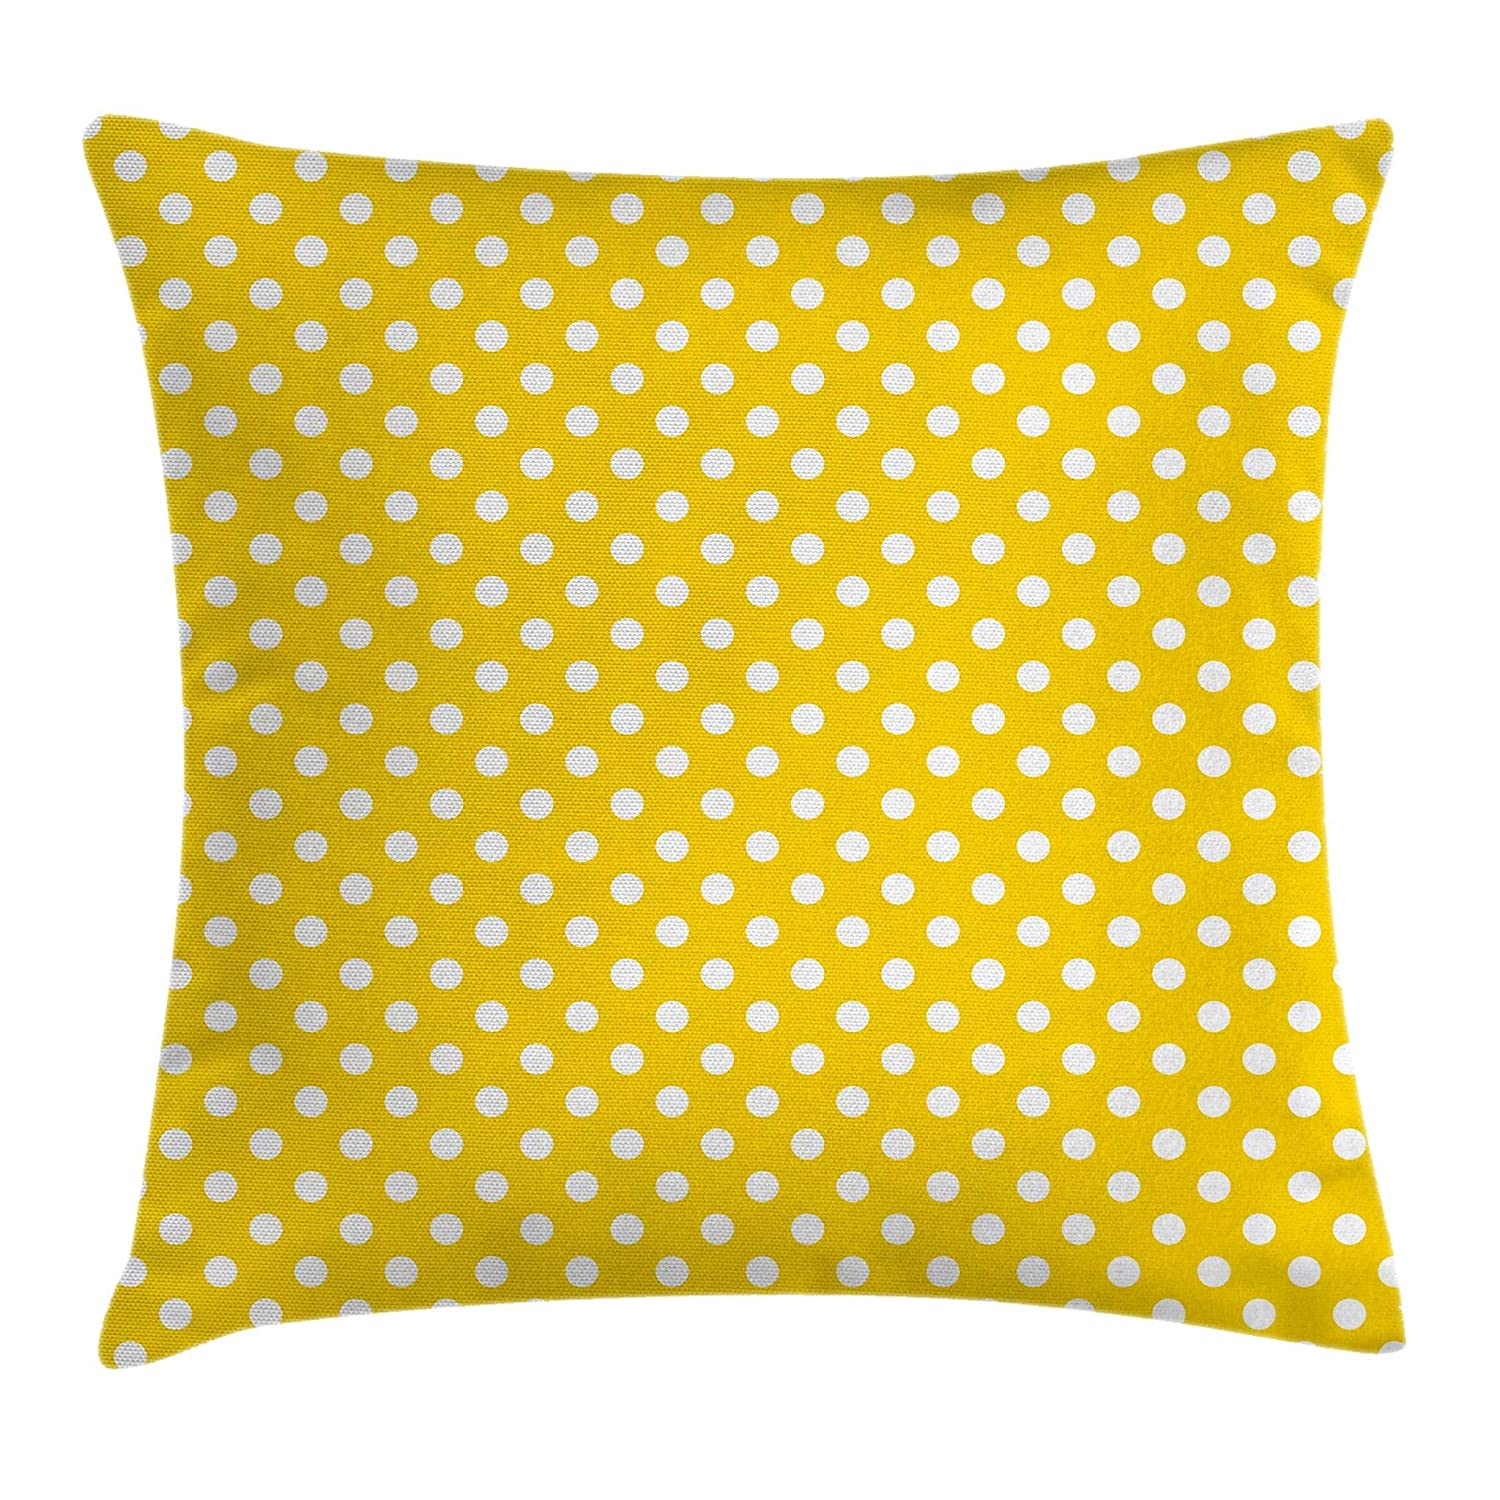 Ambesonne Yellow Decor Throw Pillow Cushion Cover by, Picnic Inspired Cute 50s 60s 70s Themed Polka Dot Spotted Pattern Print, Decorative Square Accent Pillow Case, 16 X 16 Inches, Yellow and White